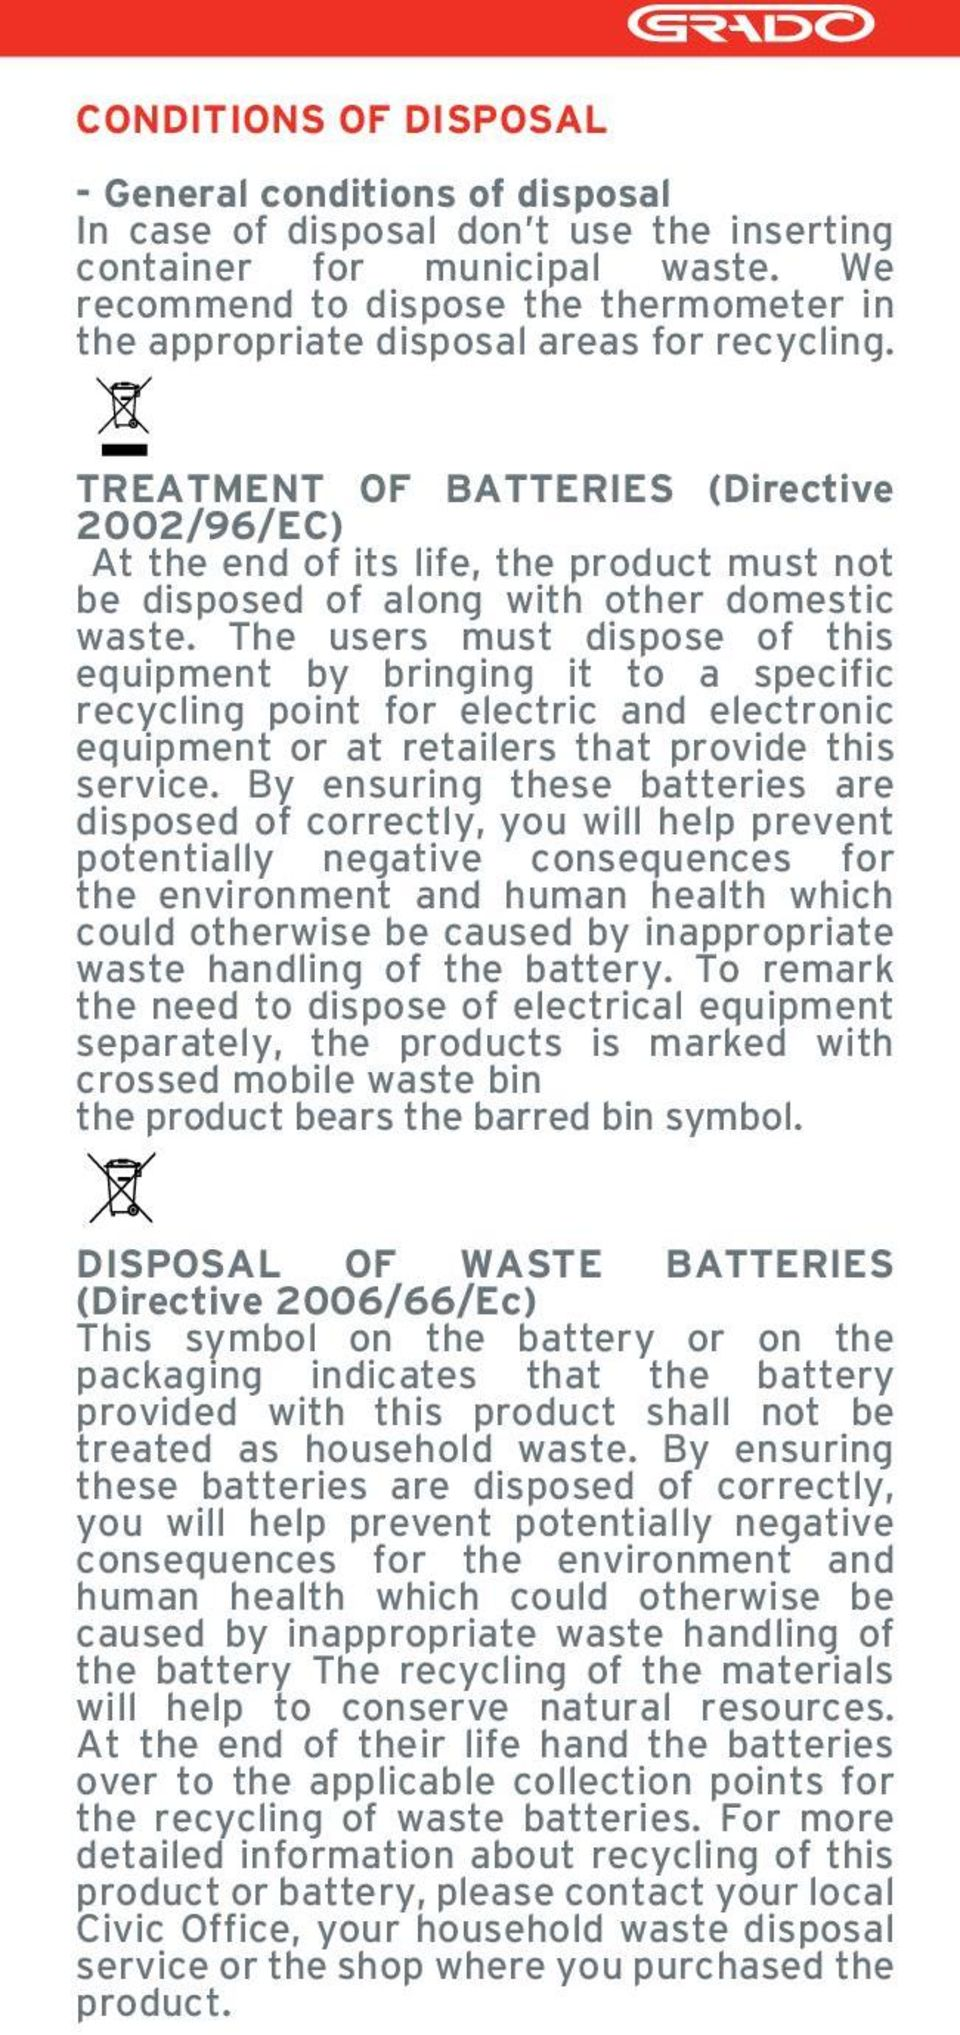 TREATMENT OF BATTERIES (Directive 2002/96/EC) At the end of its life, the product must not be disposed of along with other domestic waste.